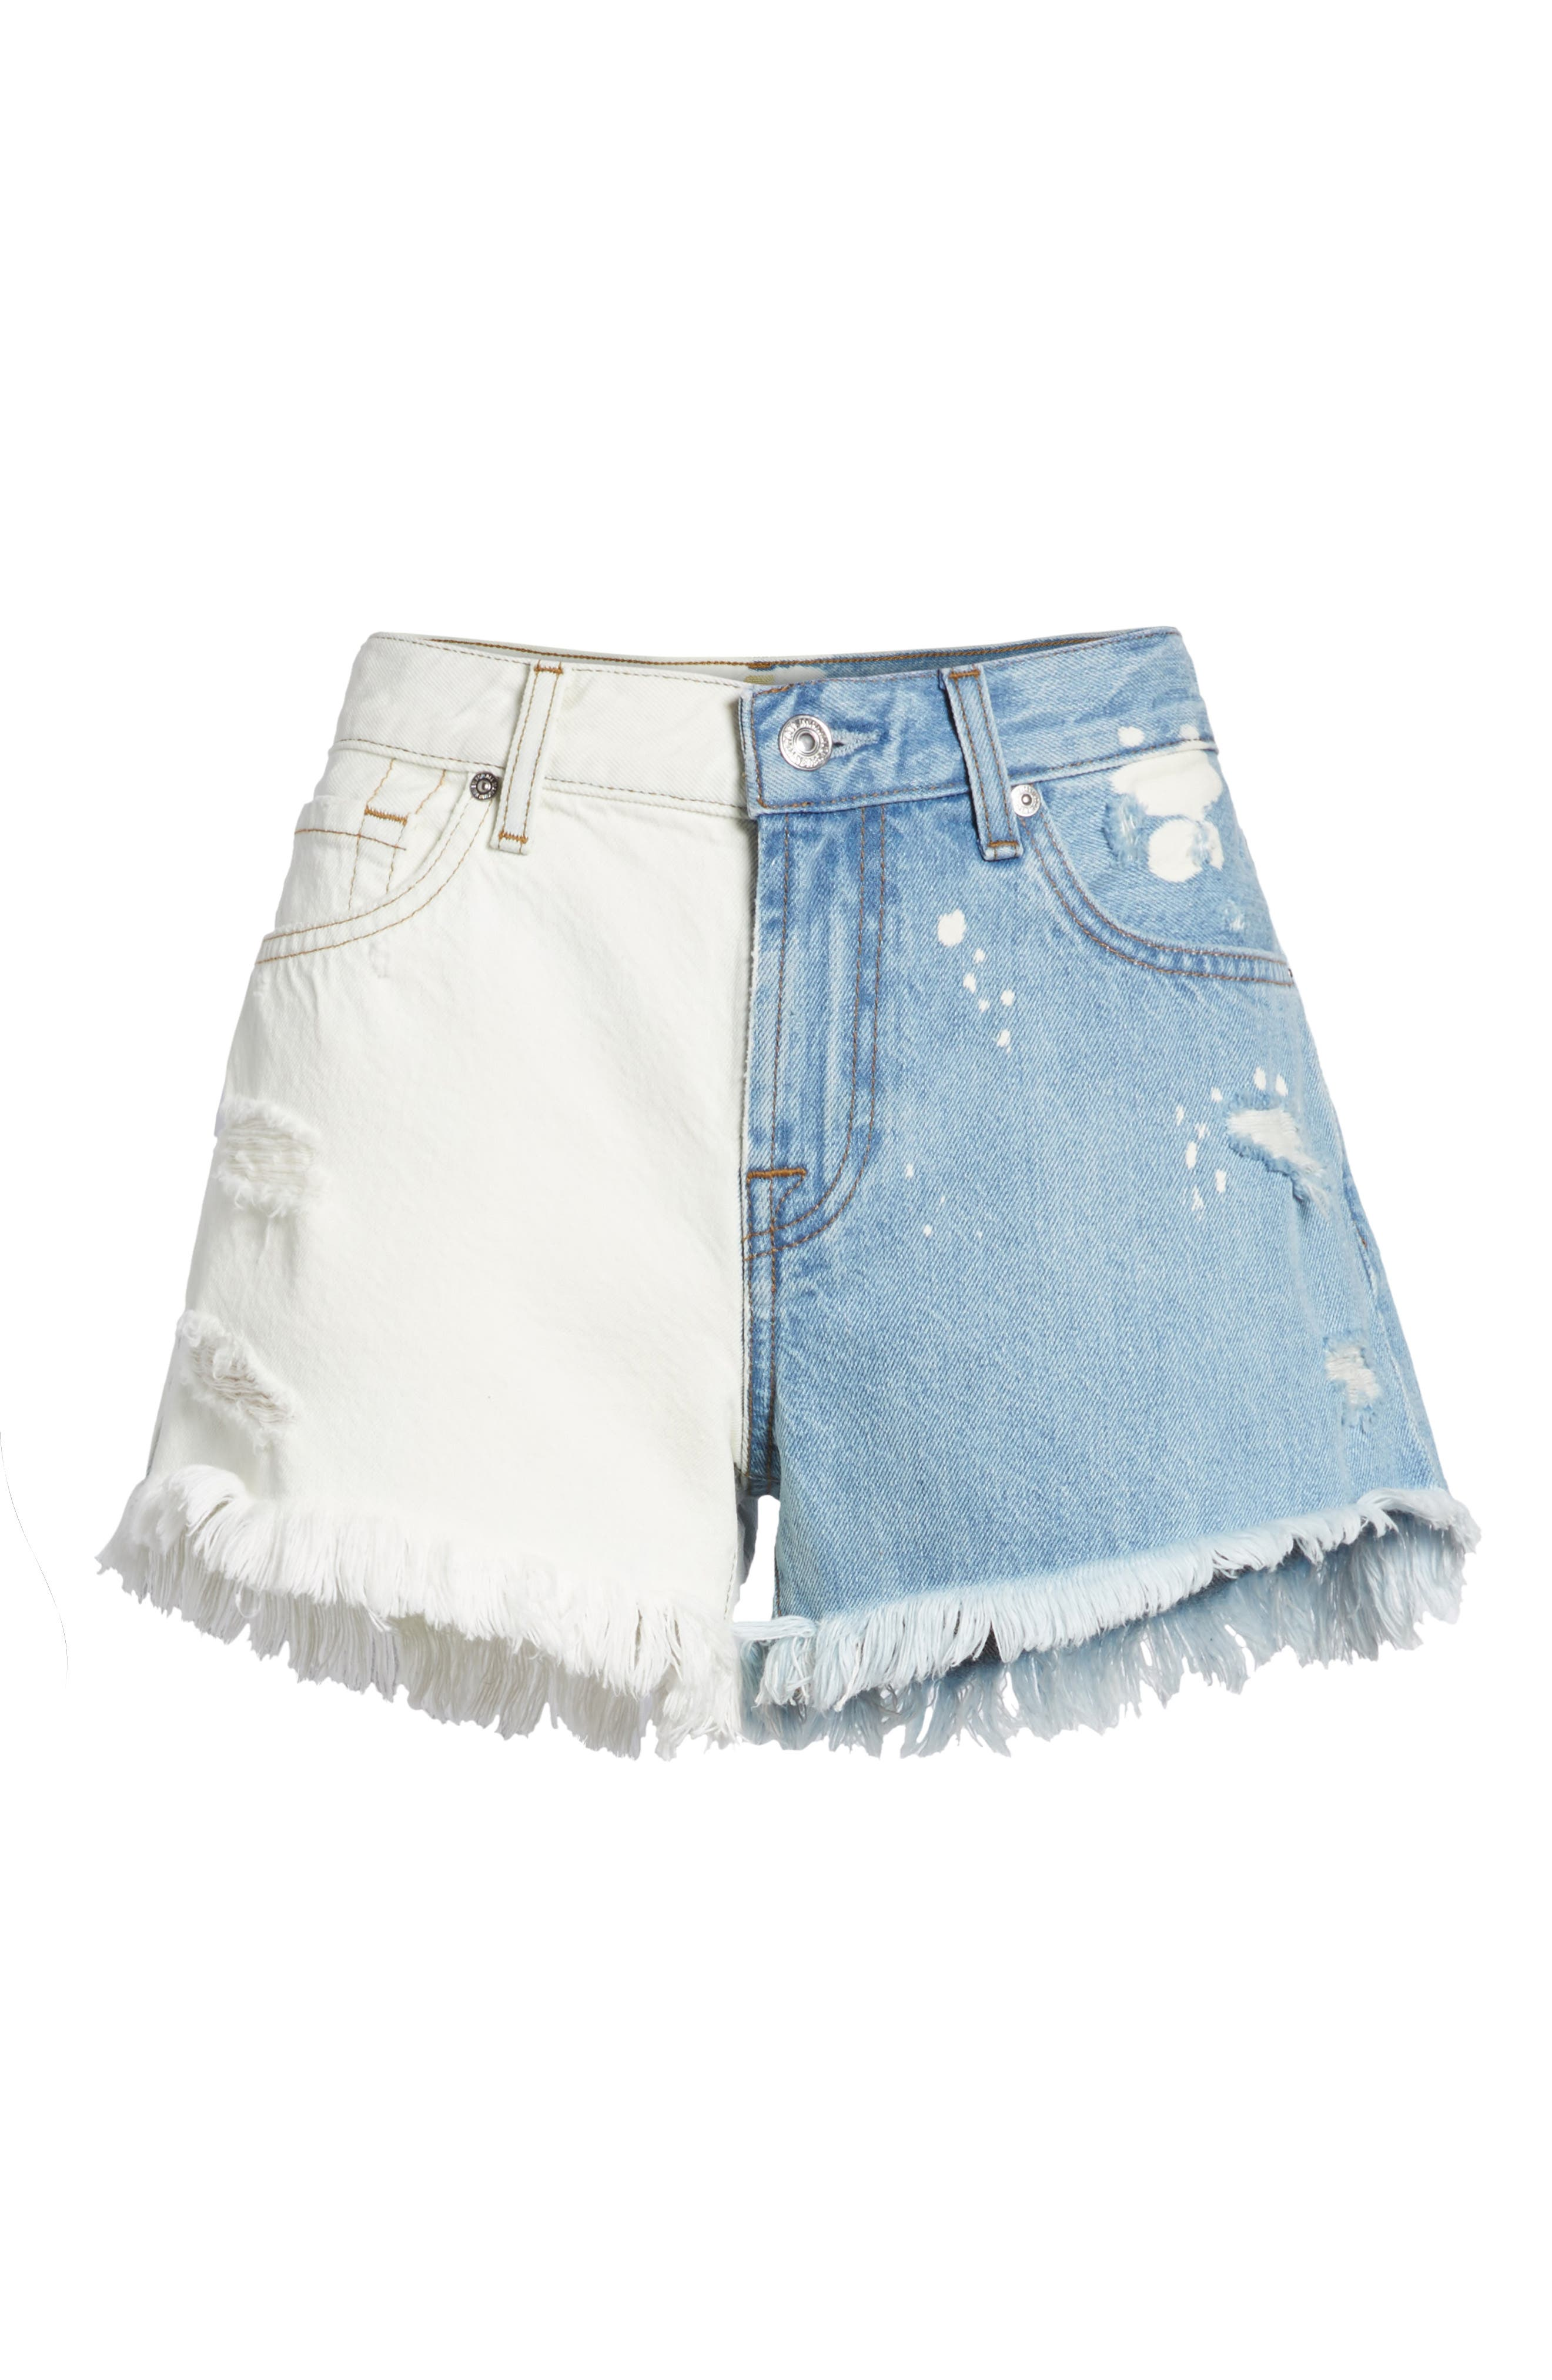 Colorblock Cutoff Denim Shorts,                             Alternate thumbnail 7, color,